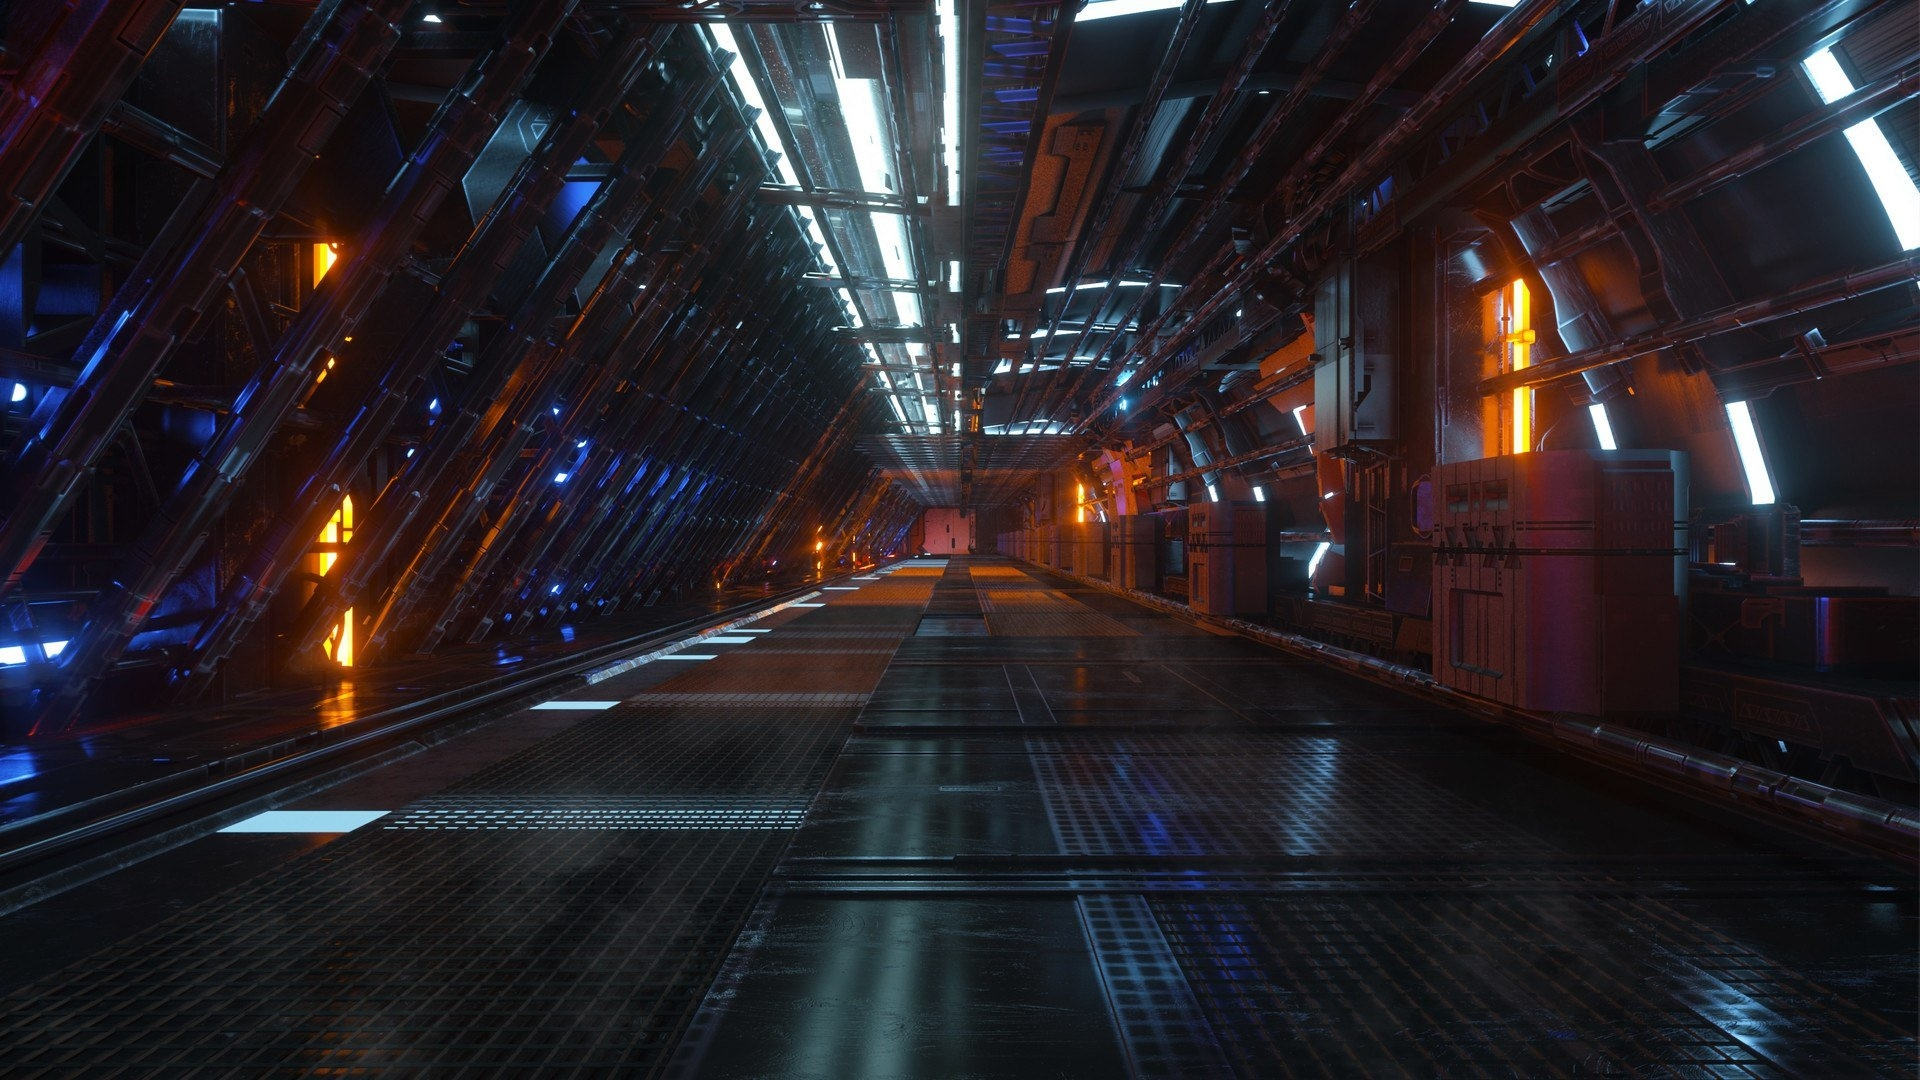 Space Tunnel Wallpaper theme